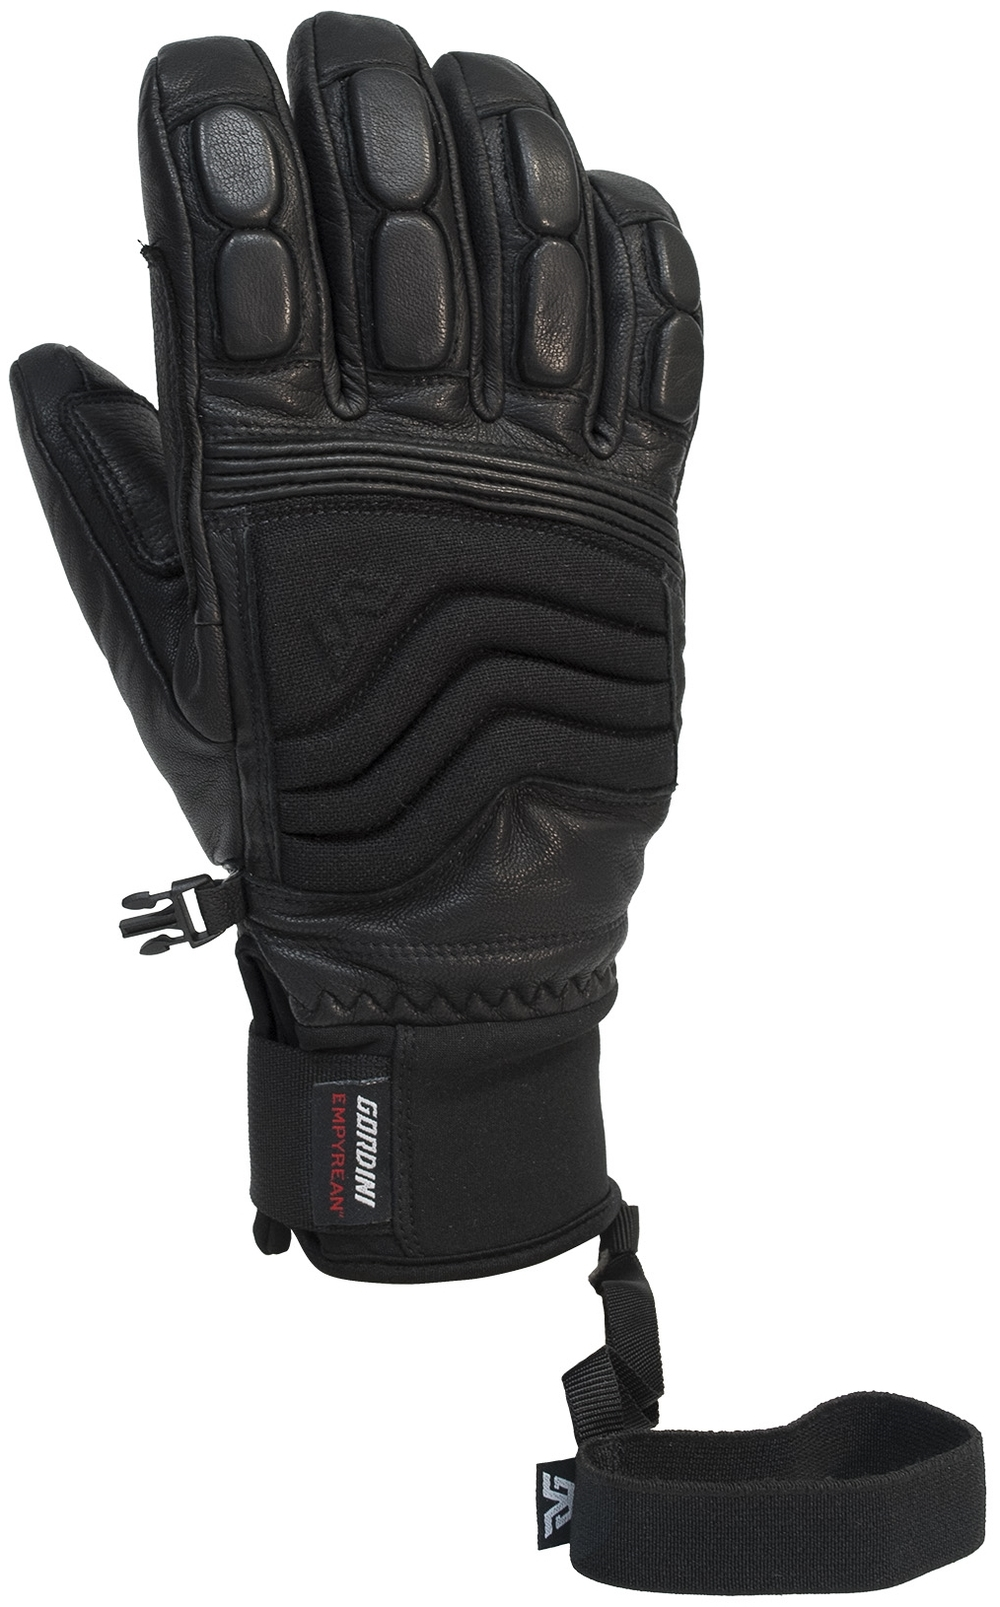 Gordini Wrangell Gloves, $130